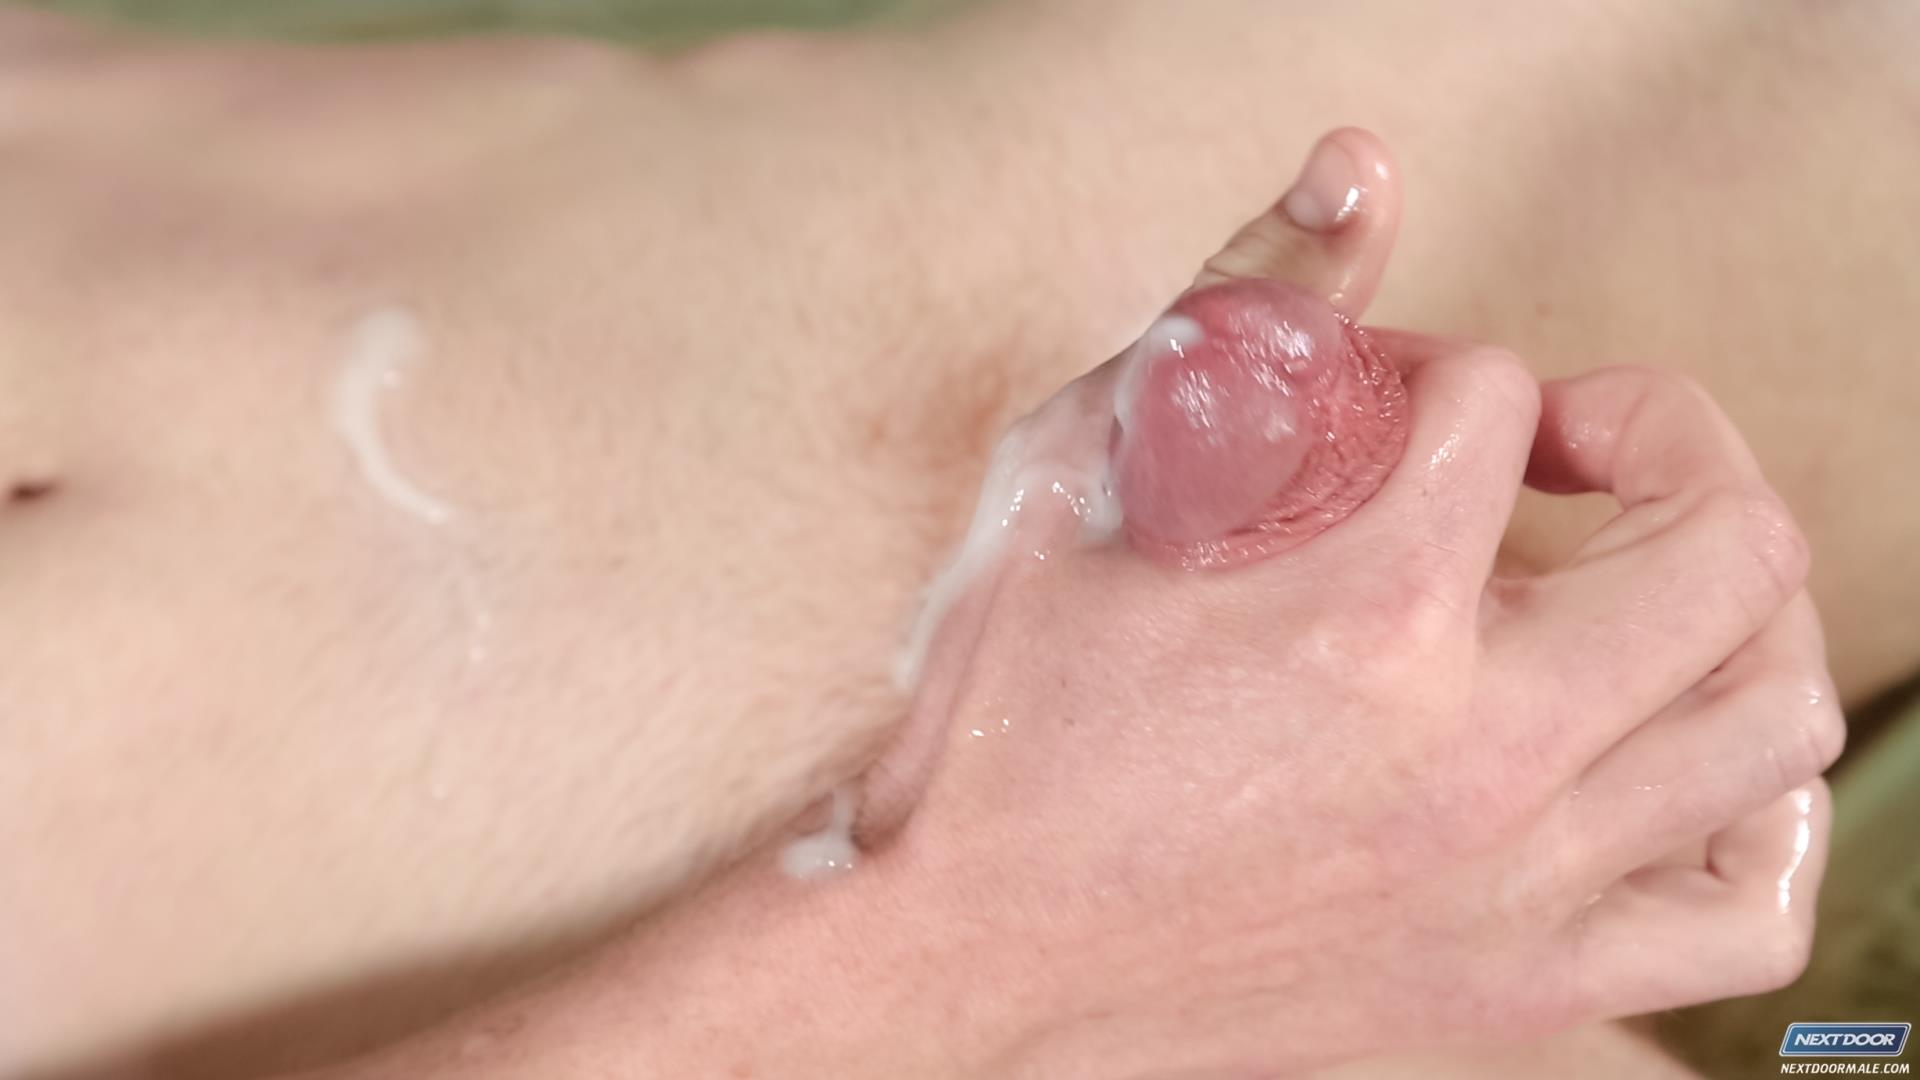 Next-Door-Male-Stryker-Texas-Redhead-Jerking-His-Cock-Amateur-Gay-Porn-15 Texas Redneck Redhead Country Boy Jerking His Ginger Cock